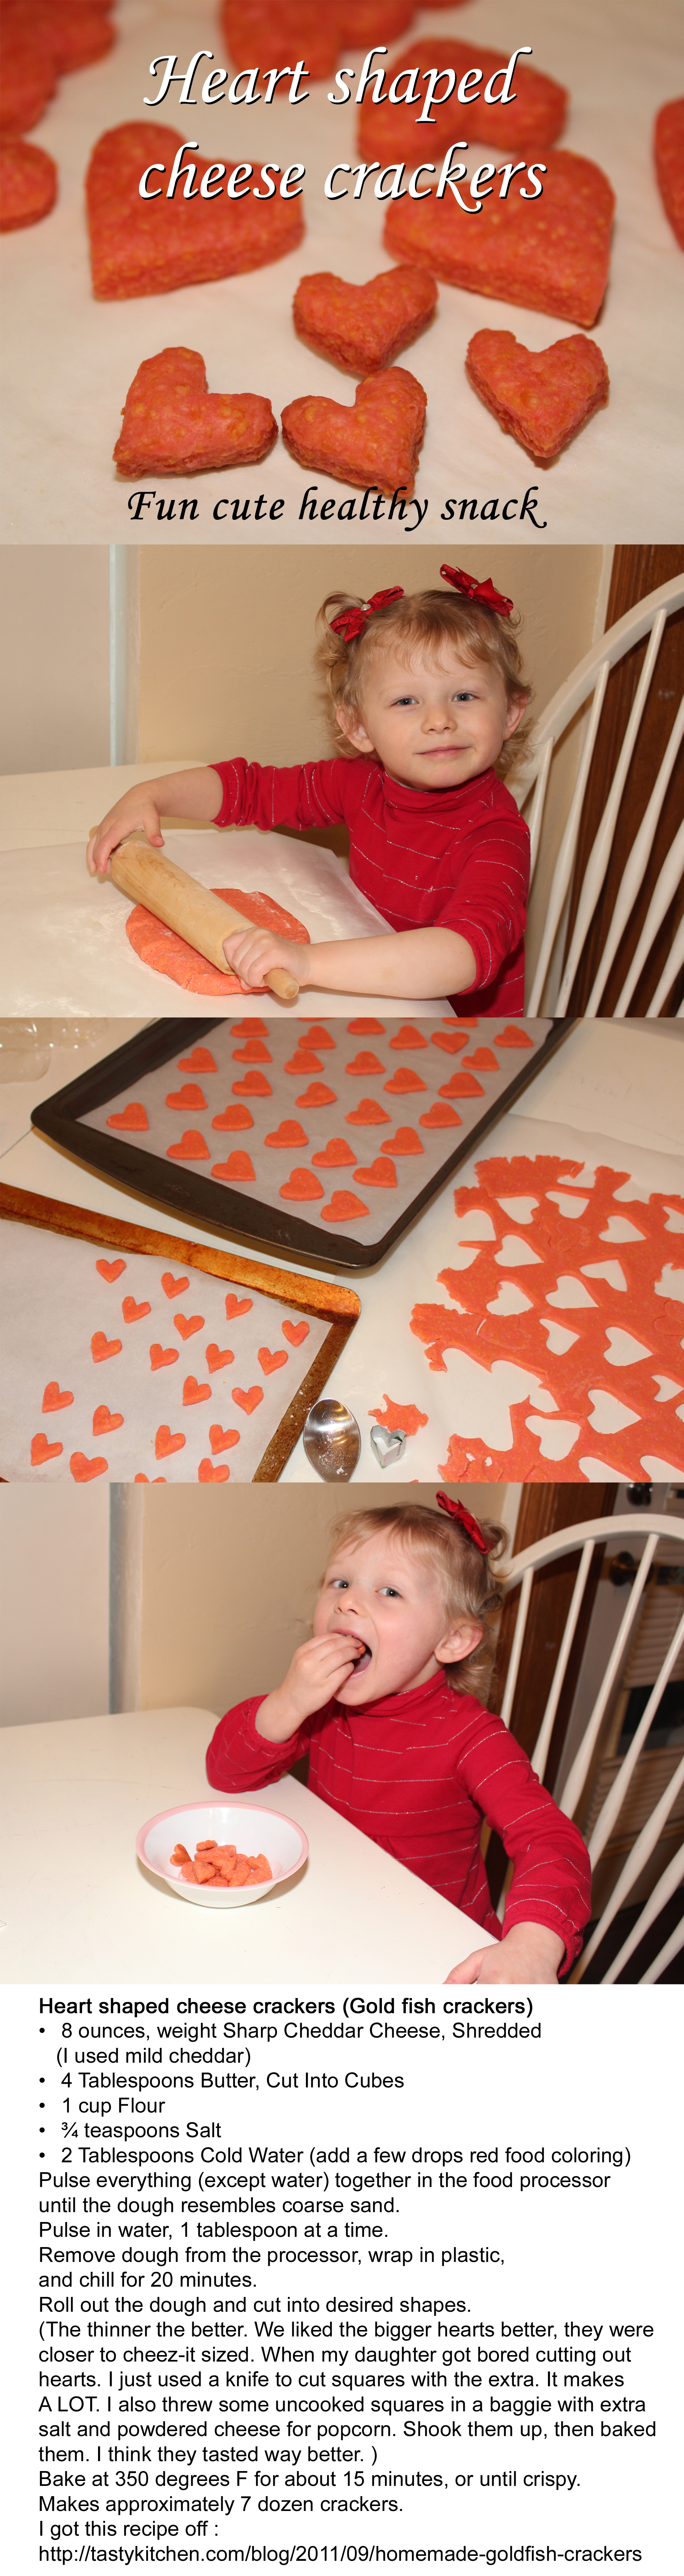 Fun Cute Valentines Snack Heart Shaped Goldfish Crackers